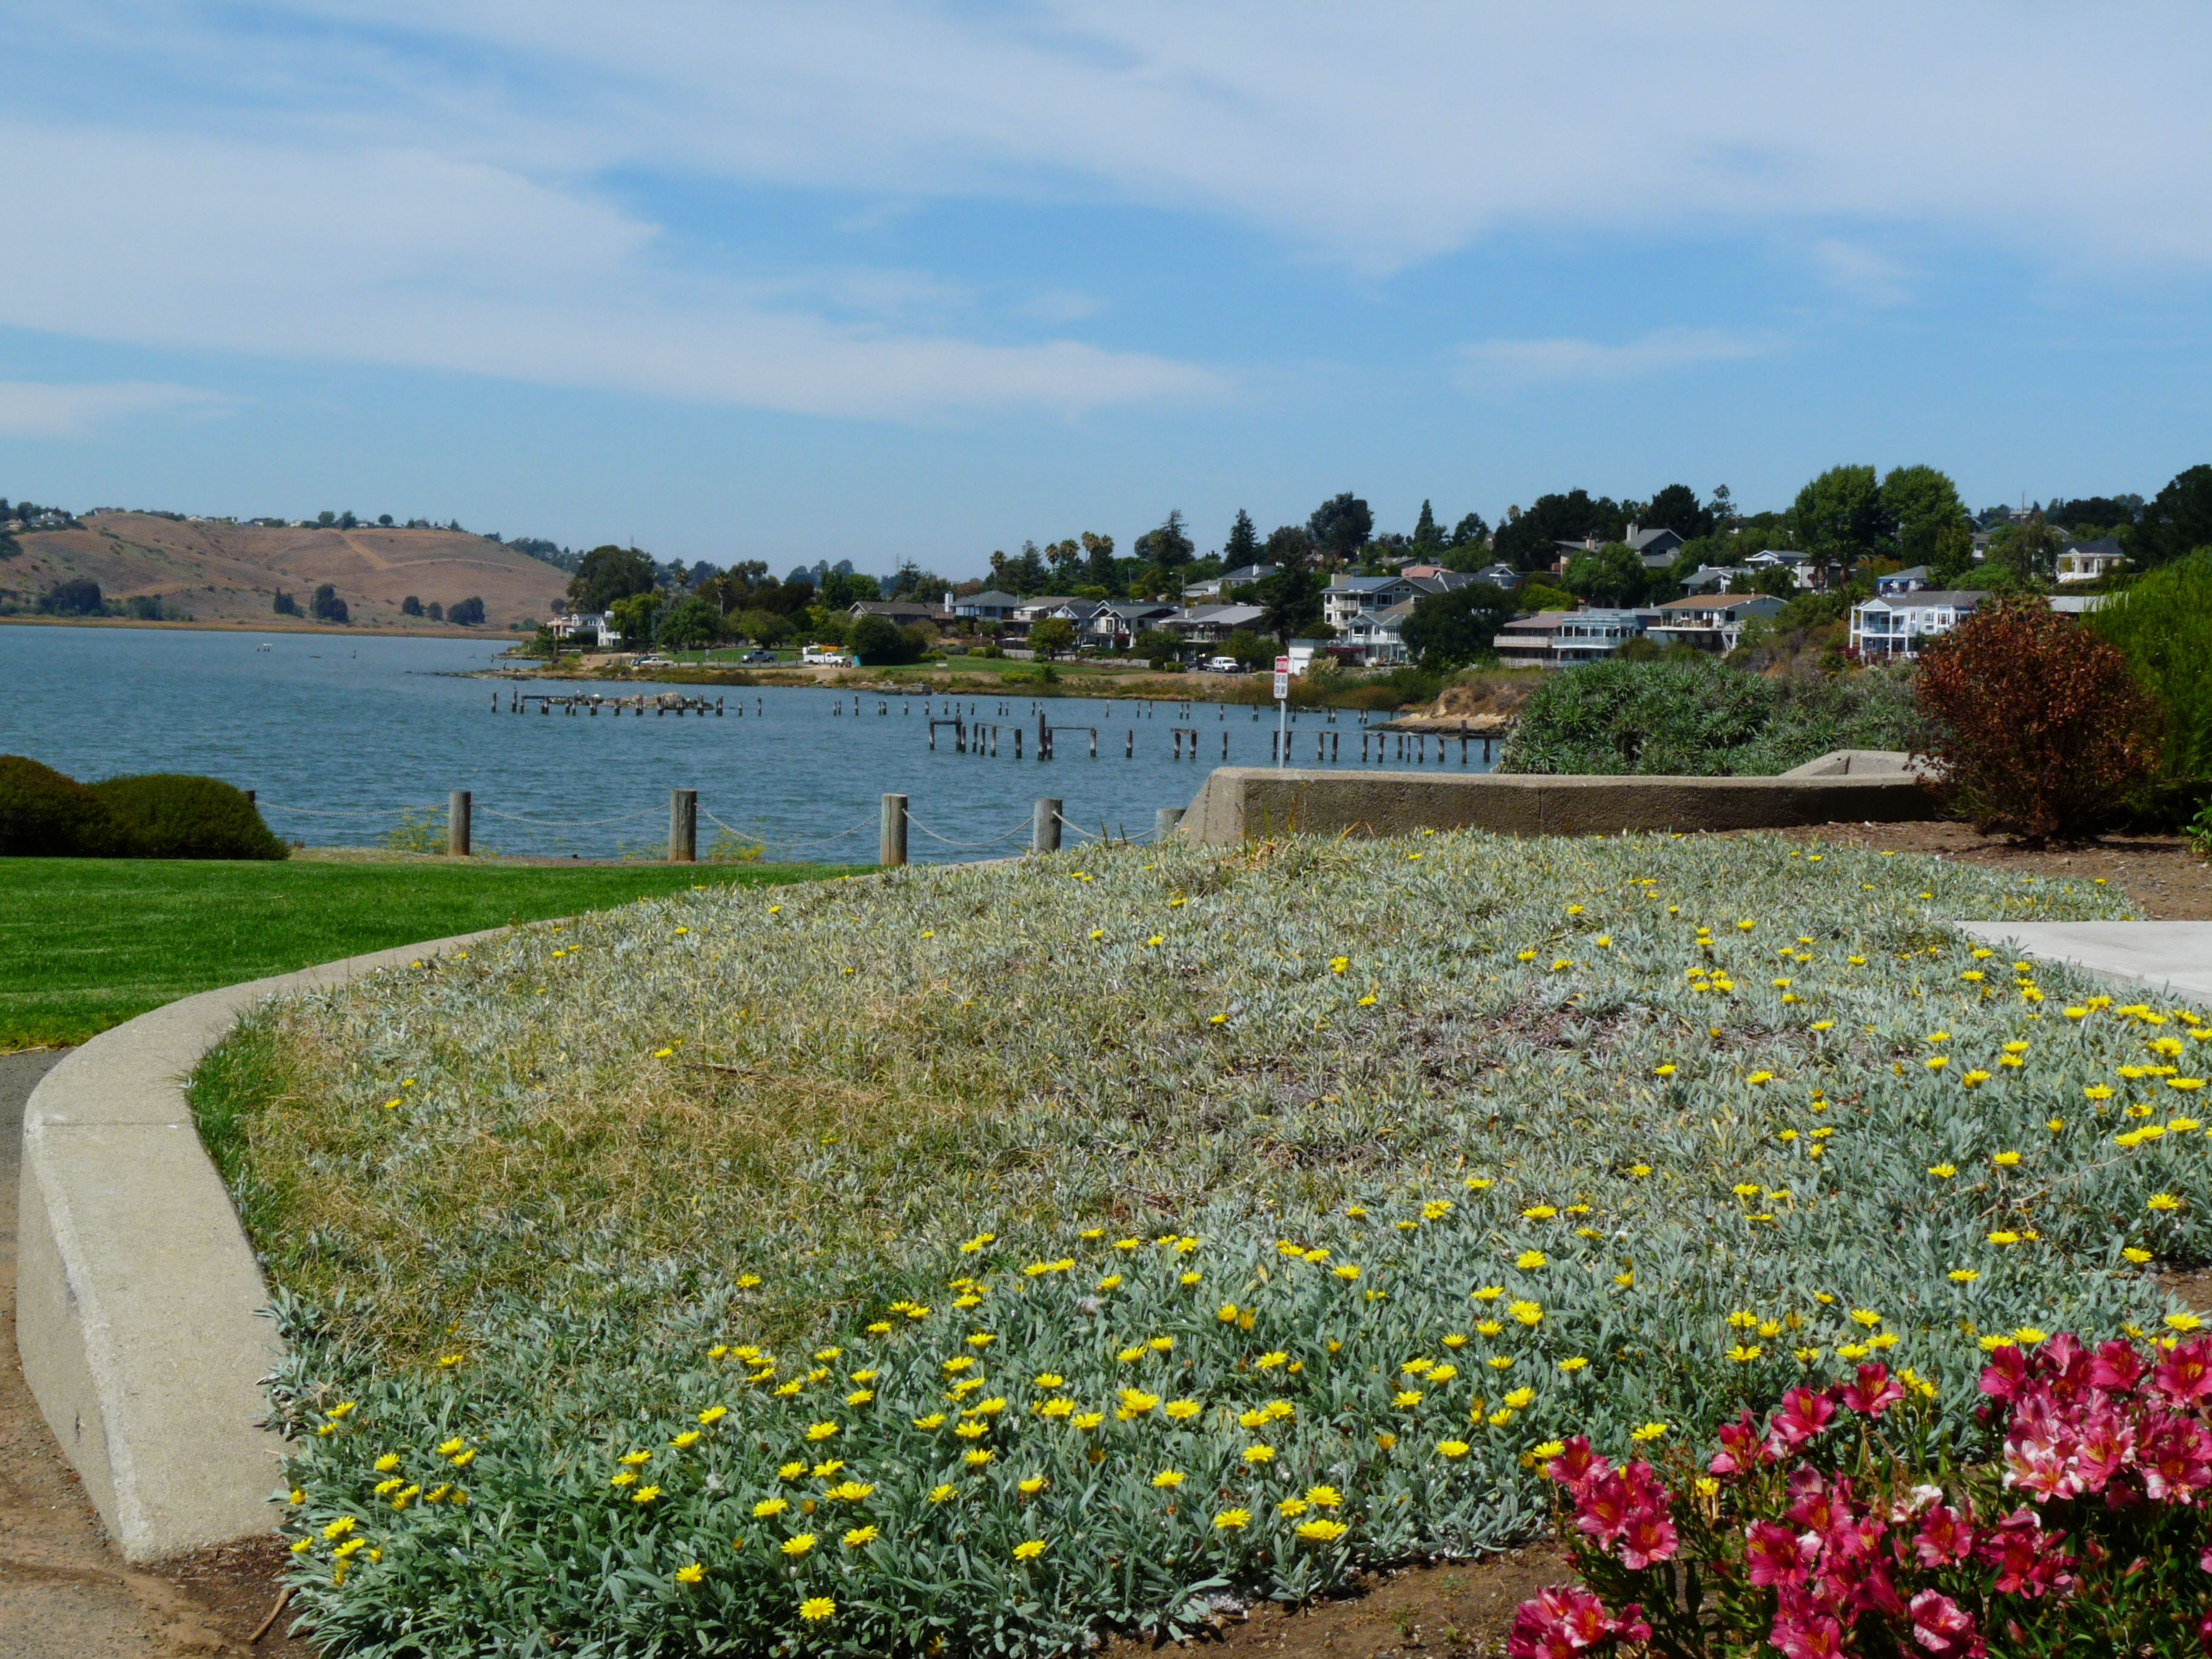 http://www.visitbenicia.org/waterfront/outdoor-recreation